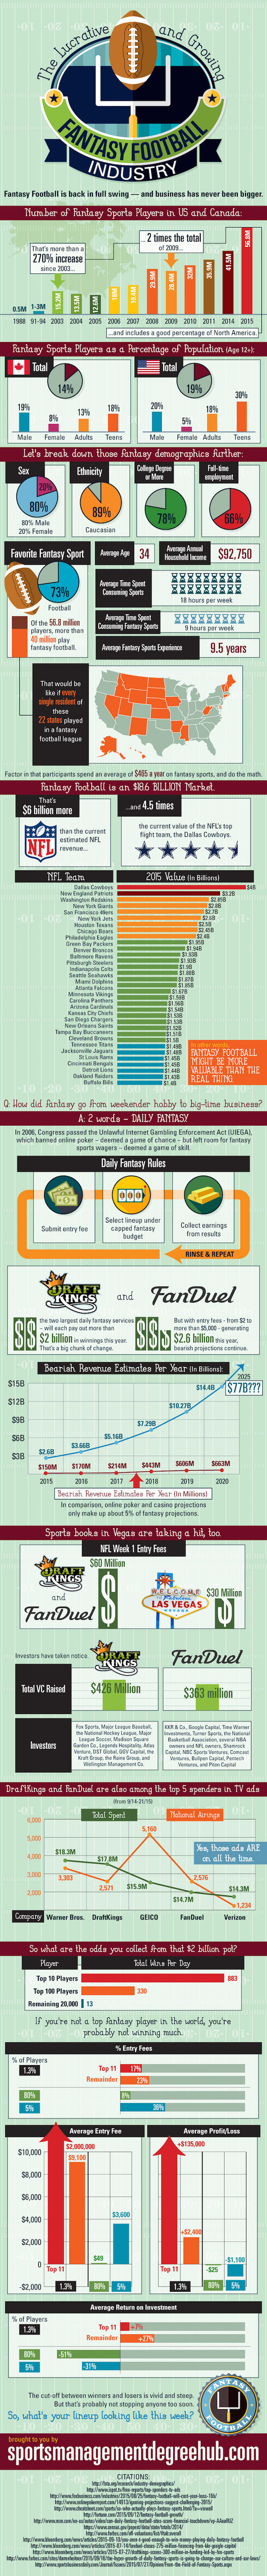 infographic fanatsty football